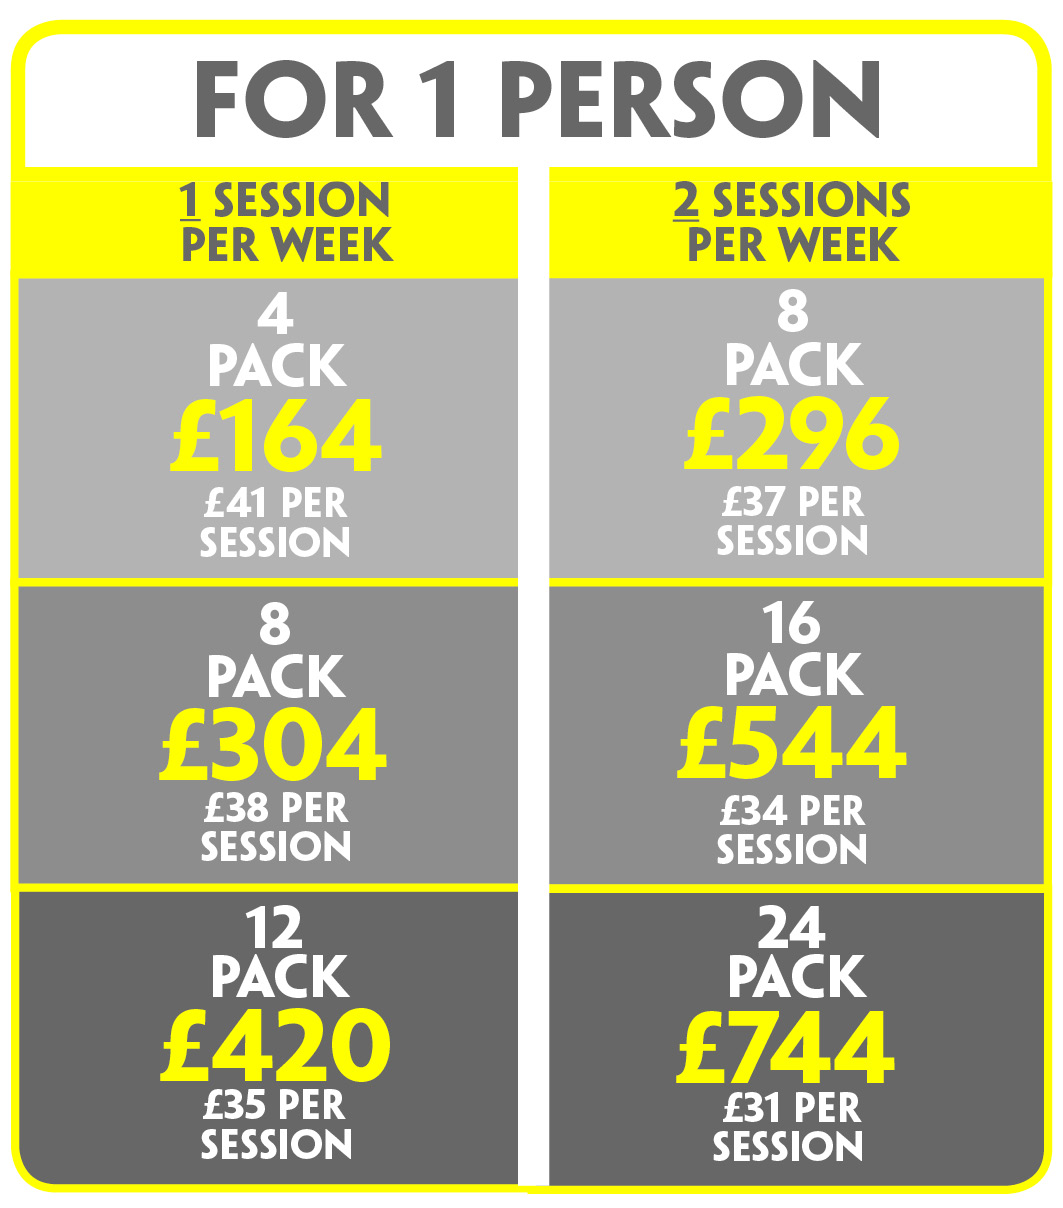 personal-trainer-bradford-on-avon-bath-frome-prices-individual-session.jpg